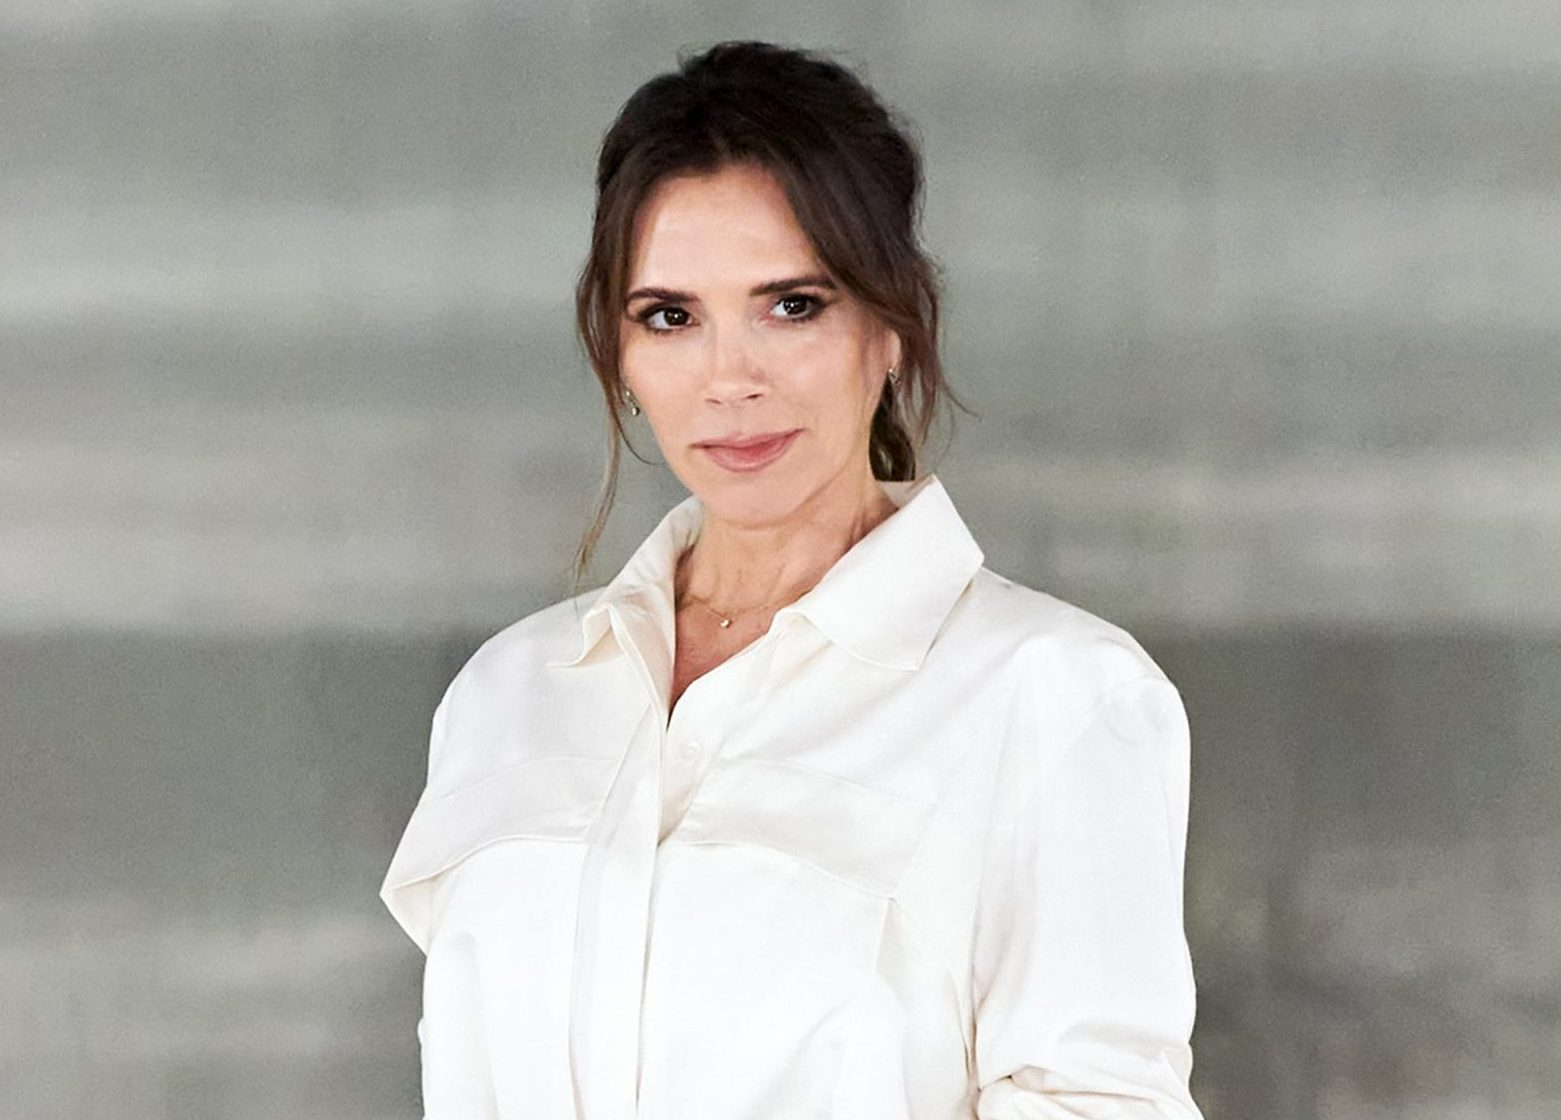 Victoria Beckham video calls NHS staff to commend them during the coronavirus pandemic